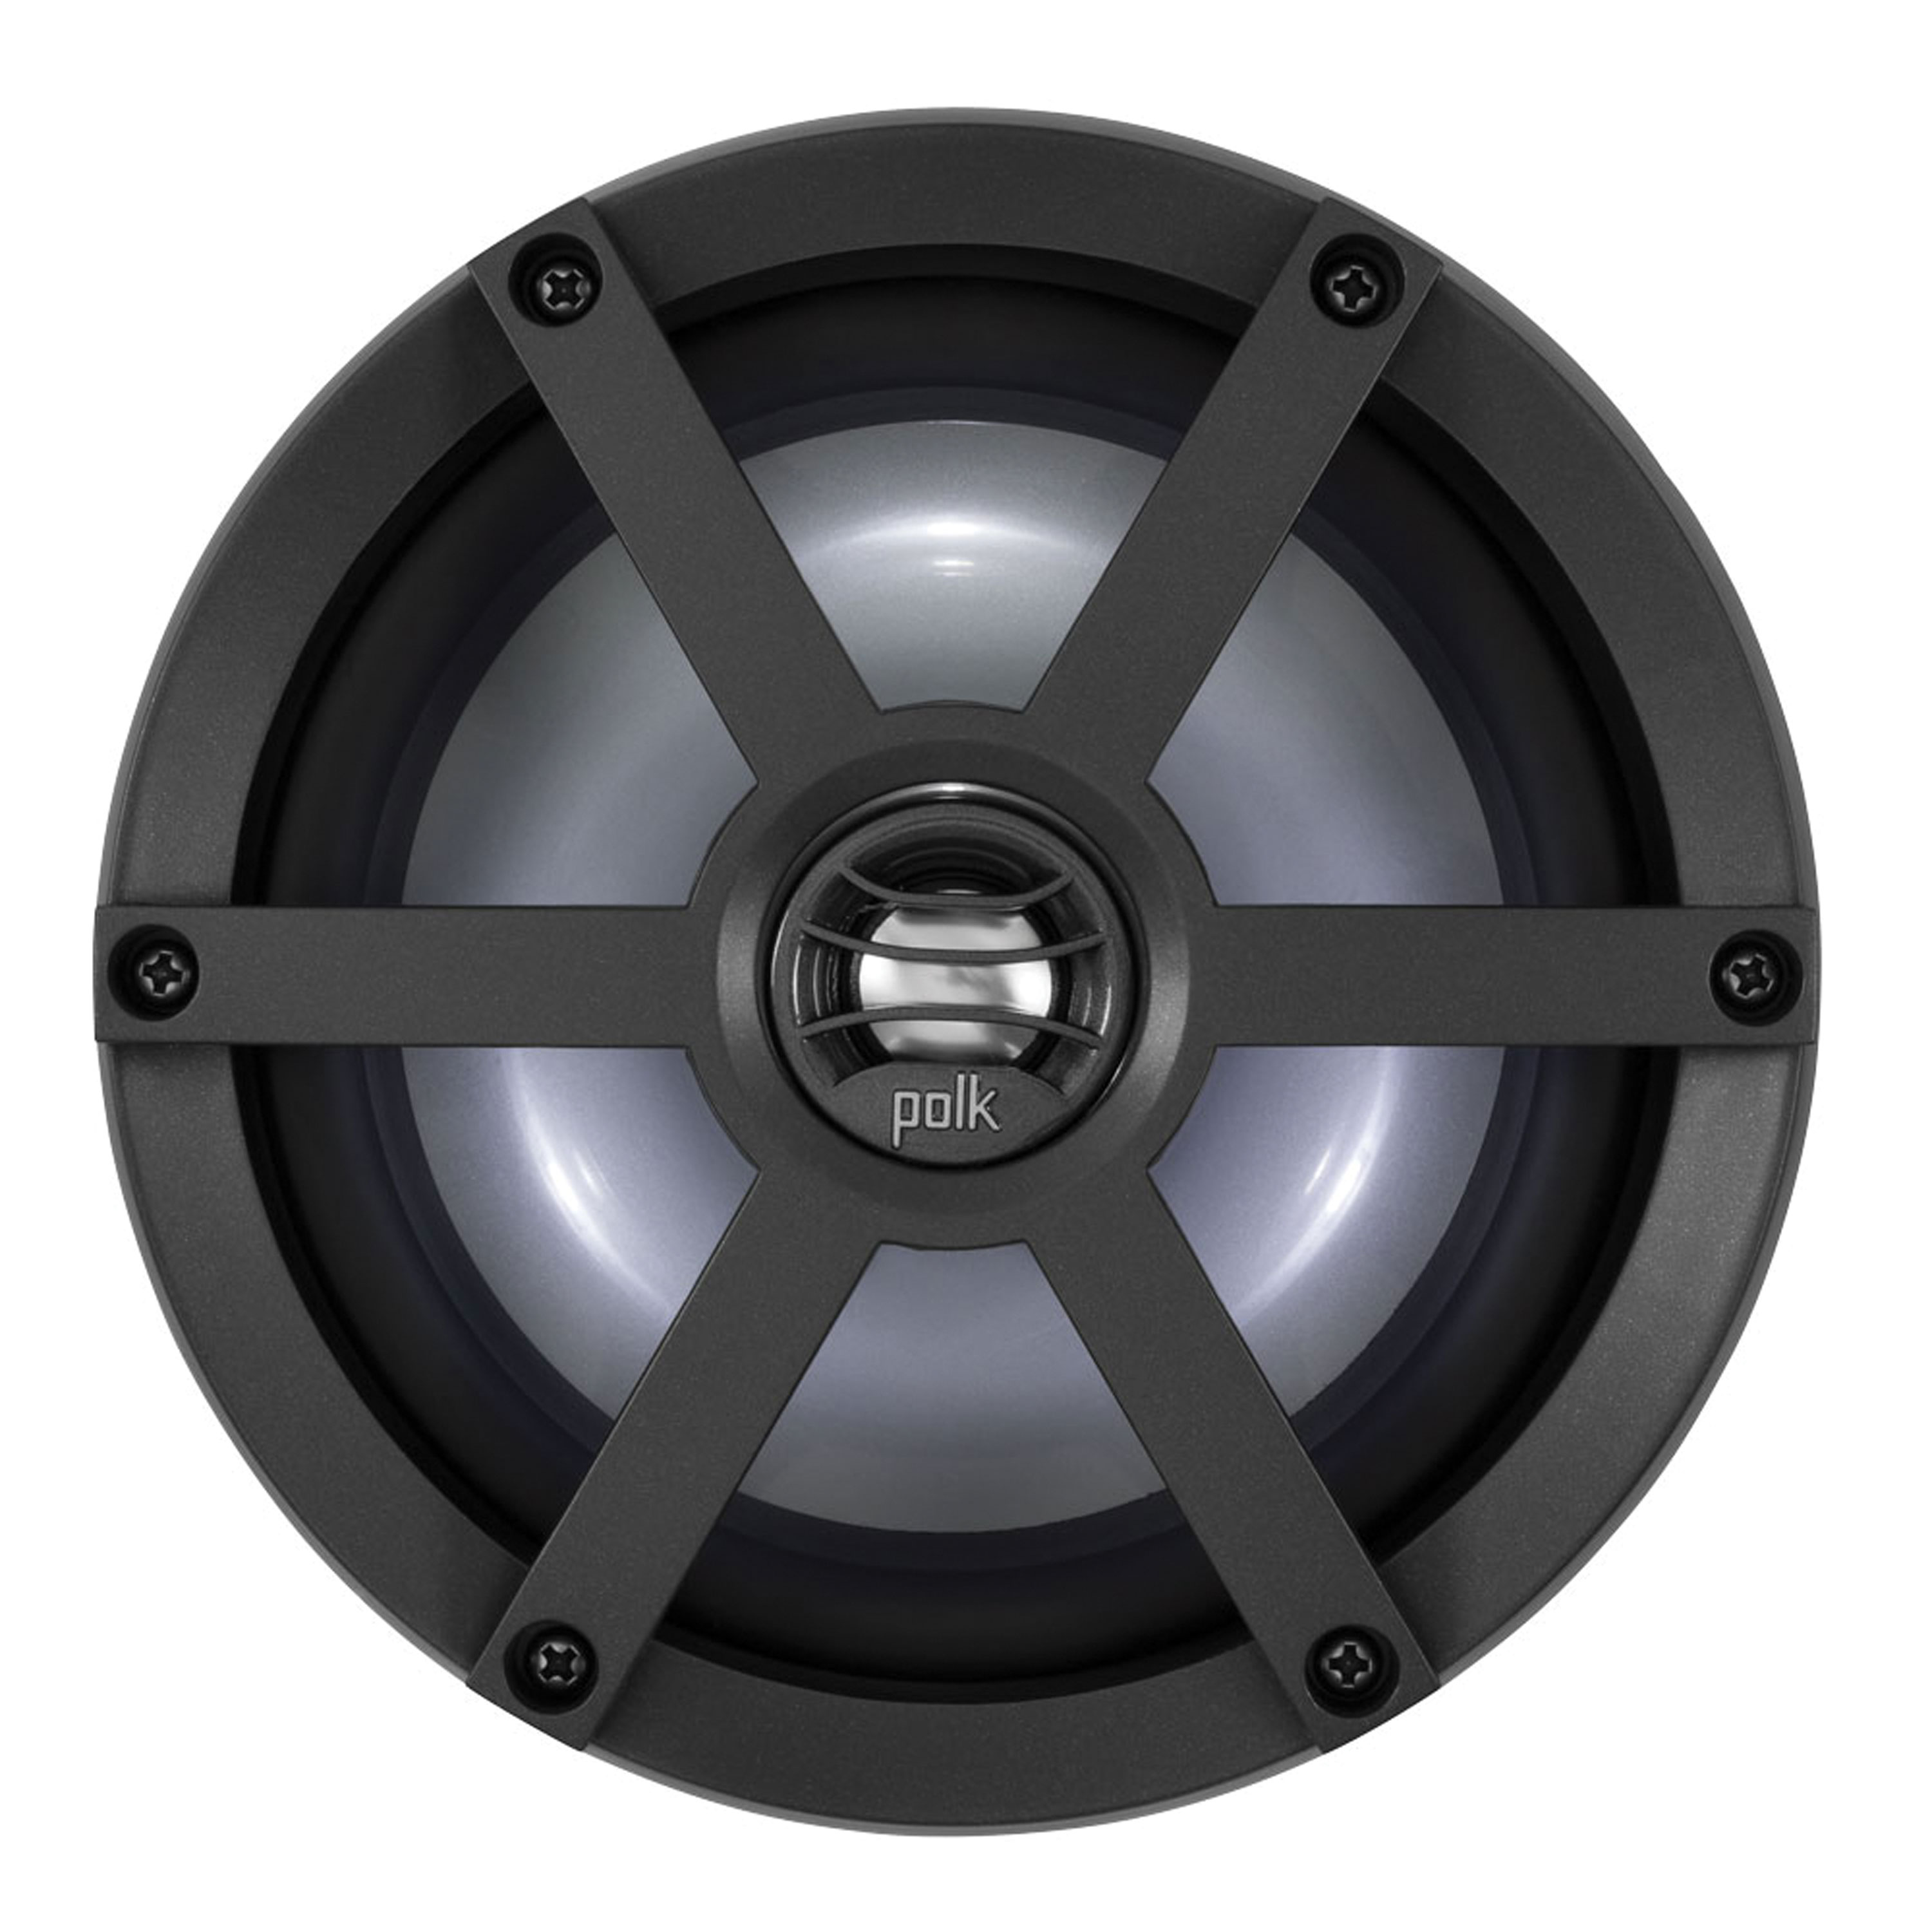 Polk UM650SRTL Coaxial Speaker Kit with Sport Grille and LED Light Ring - 6.5""